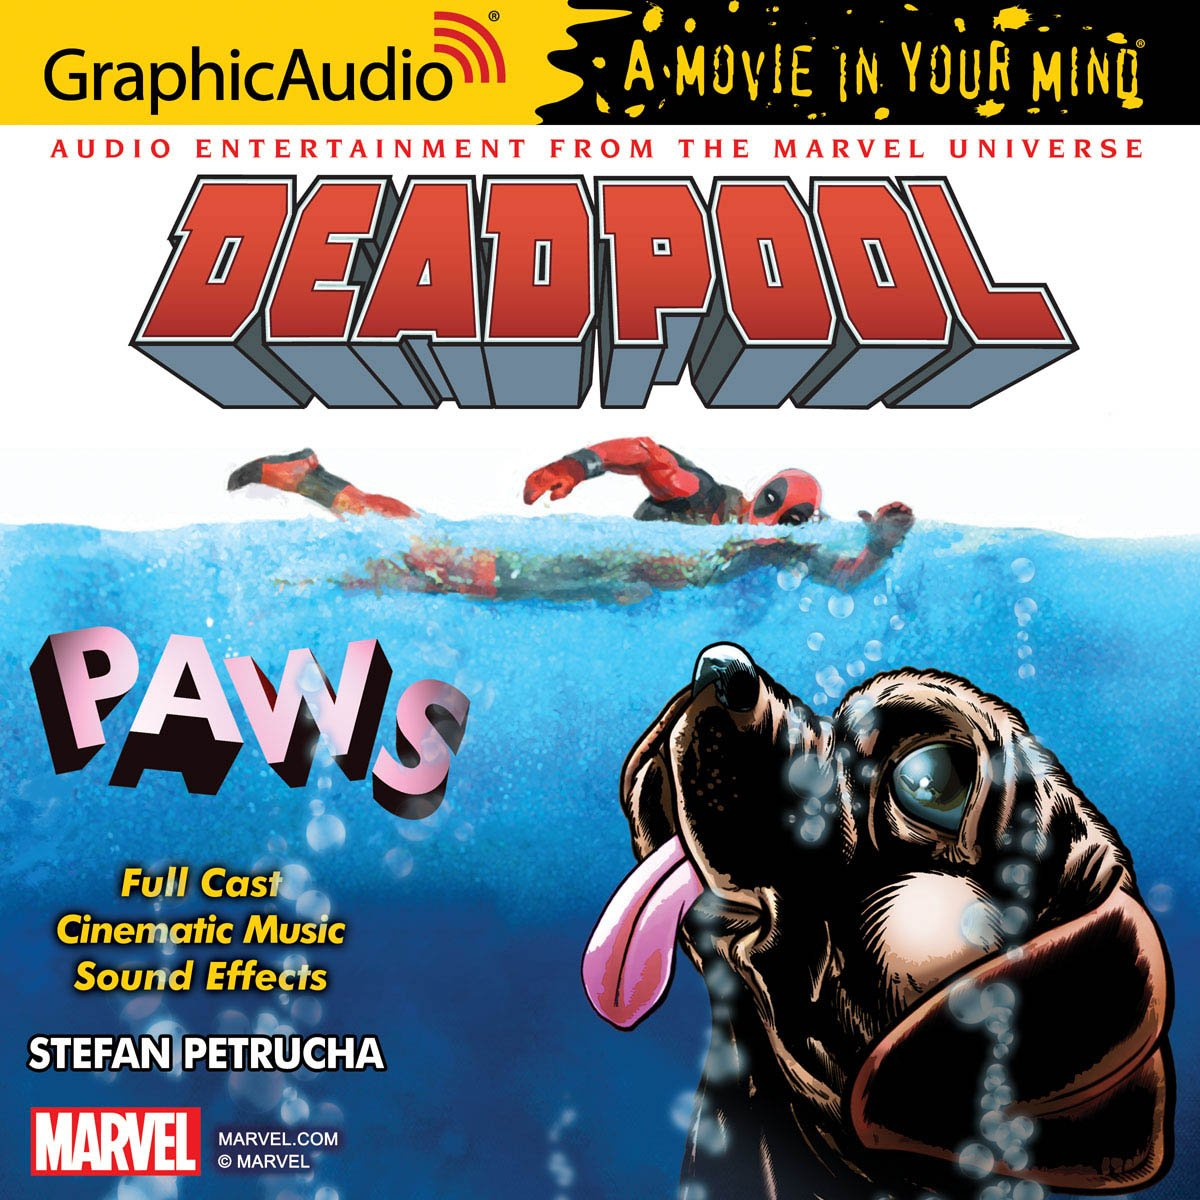 Take 60% off at GraphicAudio with coupon: LASTCALL https://www.graphicaudio.net/deadpool-paws.html  …pic.twitter.com/xLyIusliUV